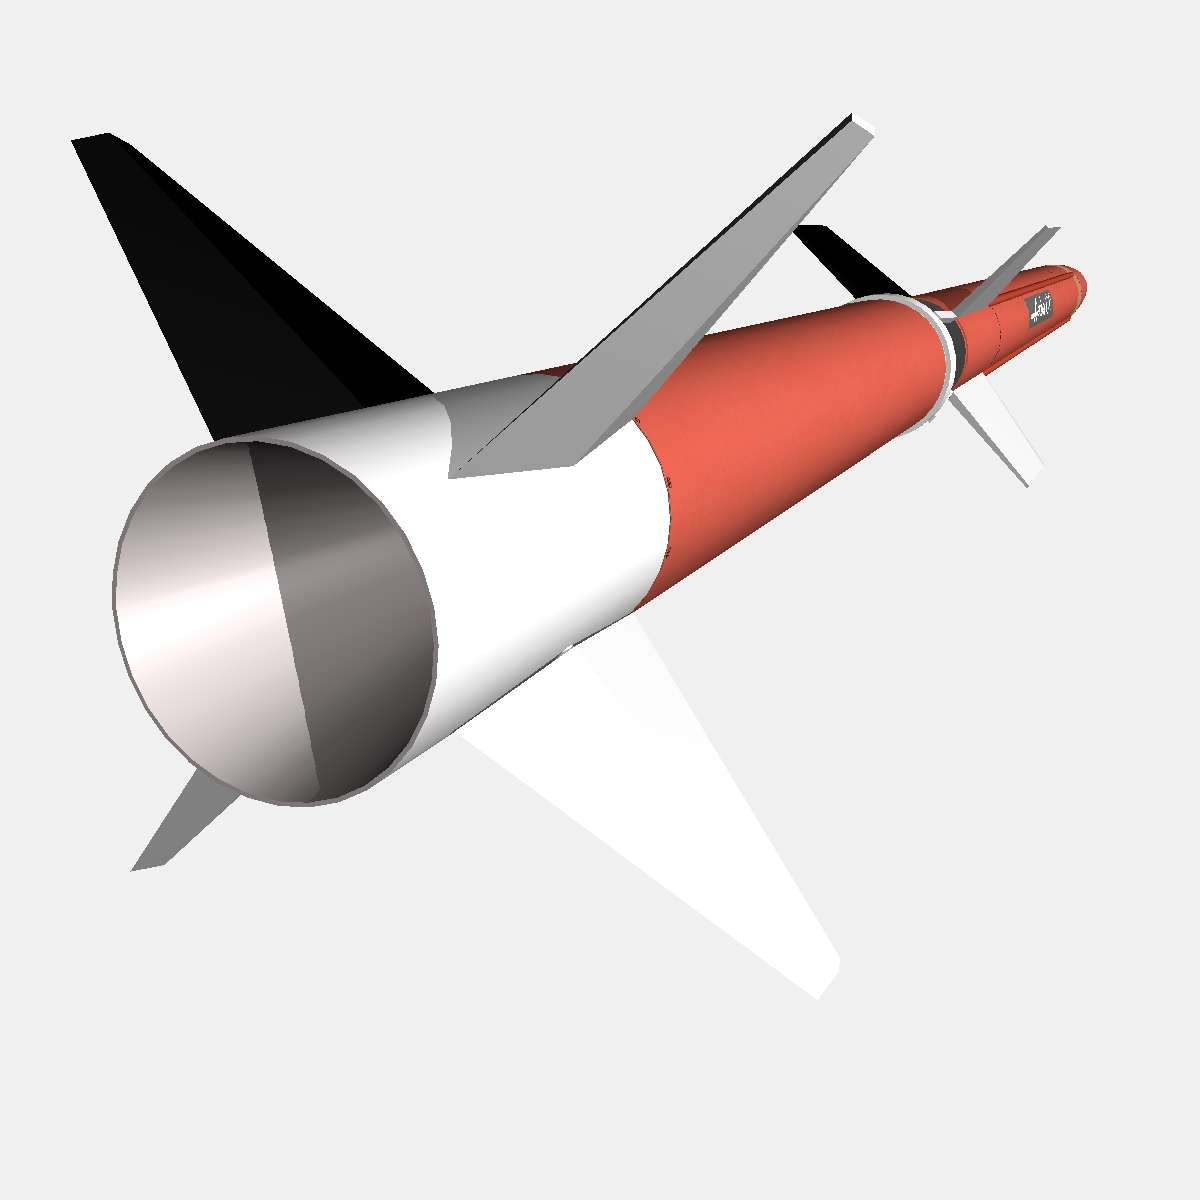 Aerobee 170 Rocket 3d model 3ds dxf fbx blend cob dae X  obj 166041